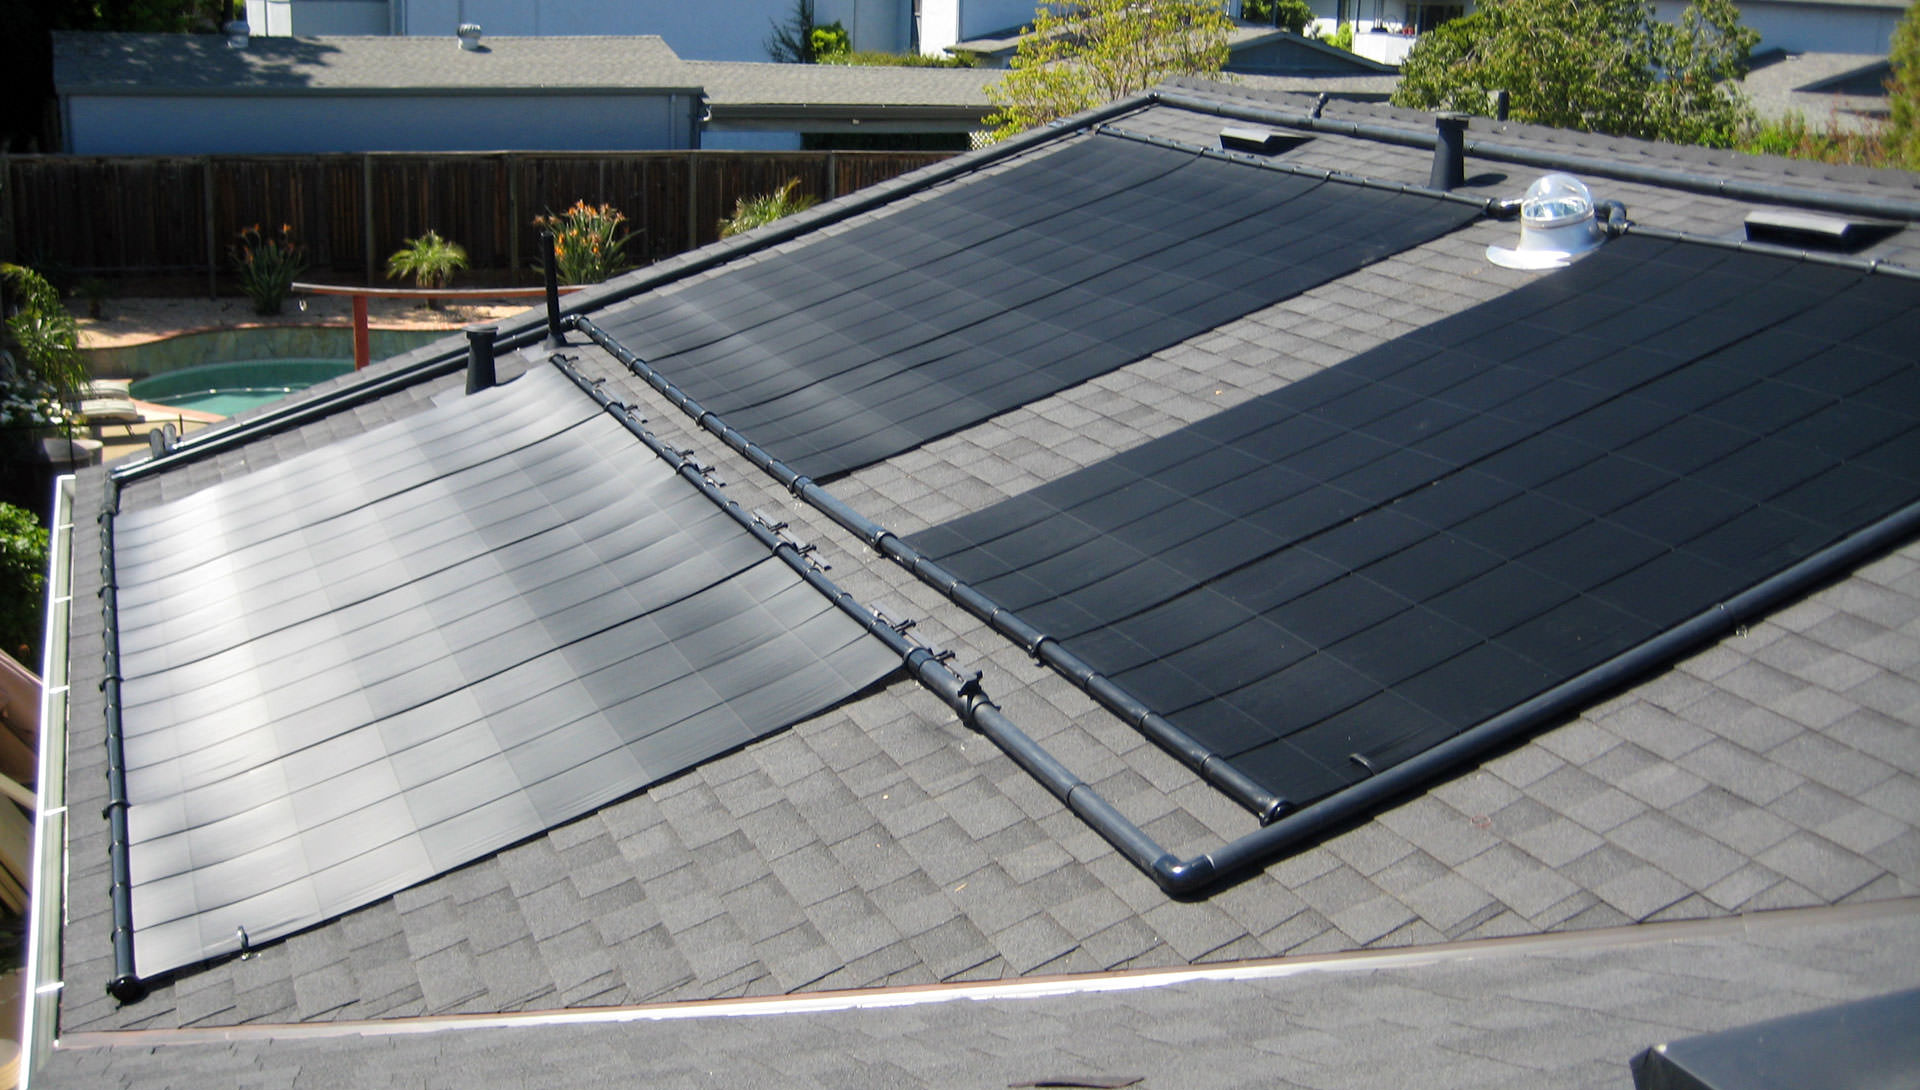 Solaron Solar Electricity And Pool Heating In Sacramento